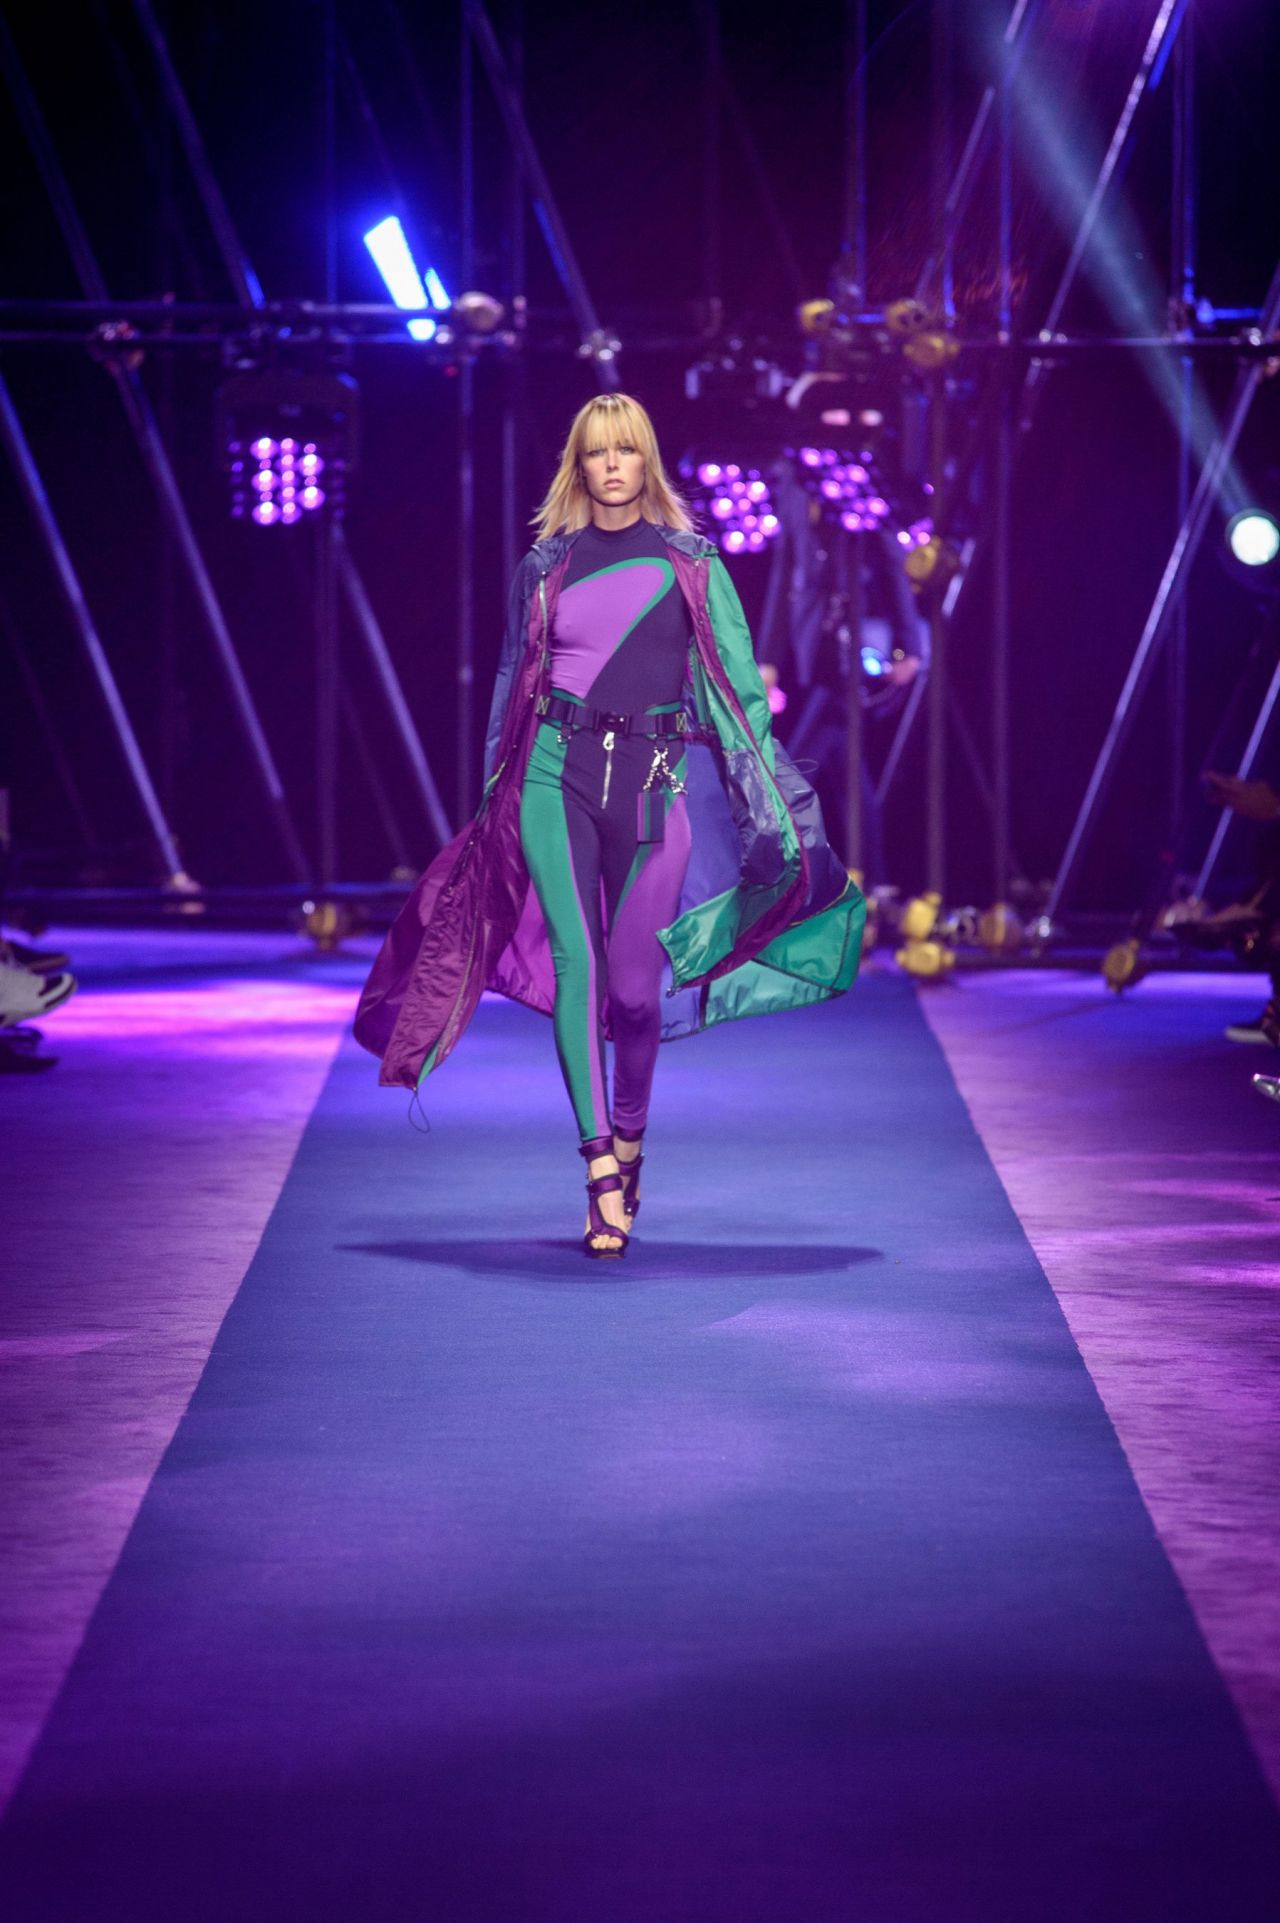 Edie campbell versace s s 2017 show in milan september 2016 for Milan show 2016